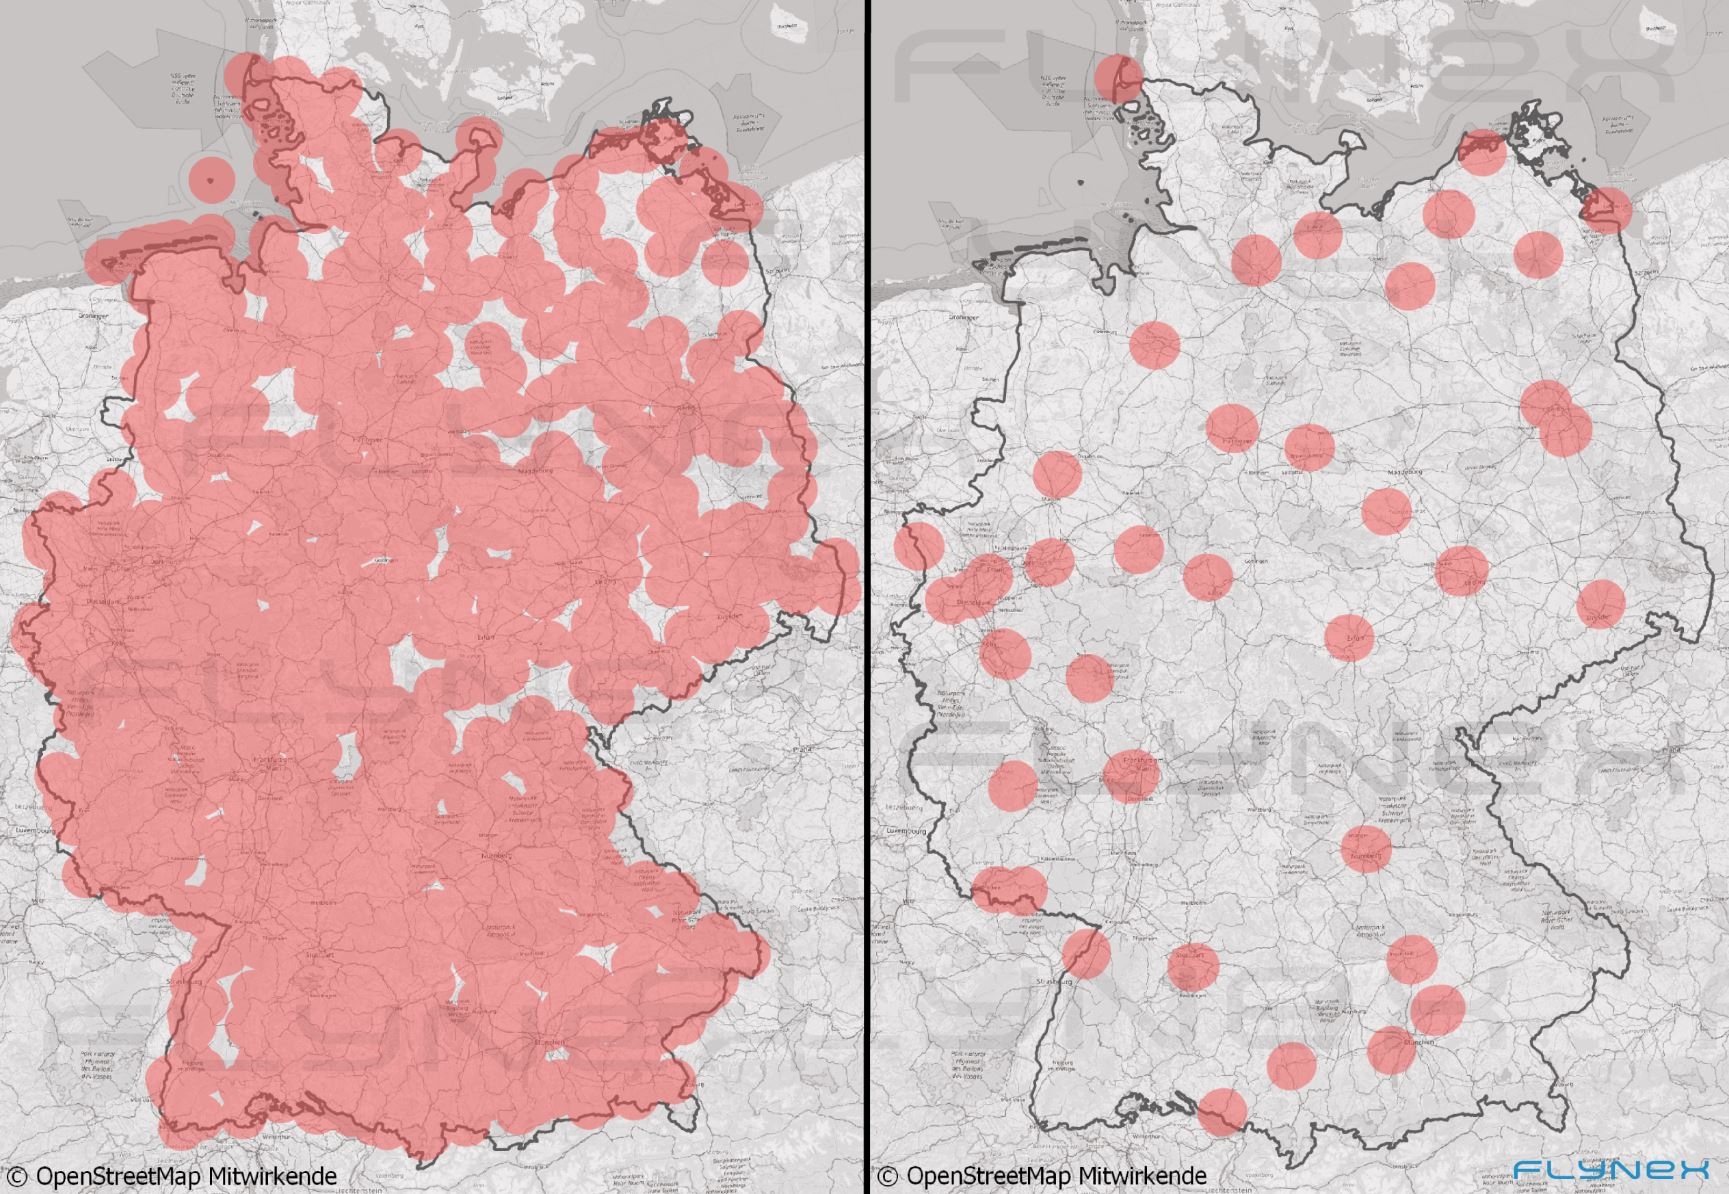 Map of Germany with markers in comparison